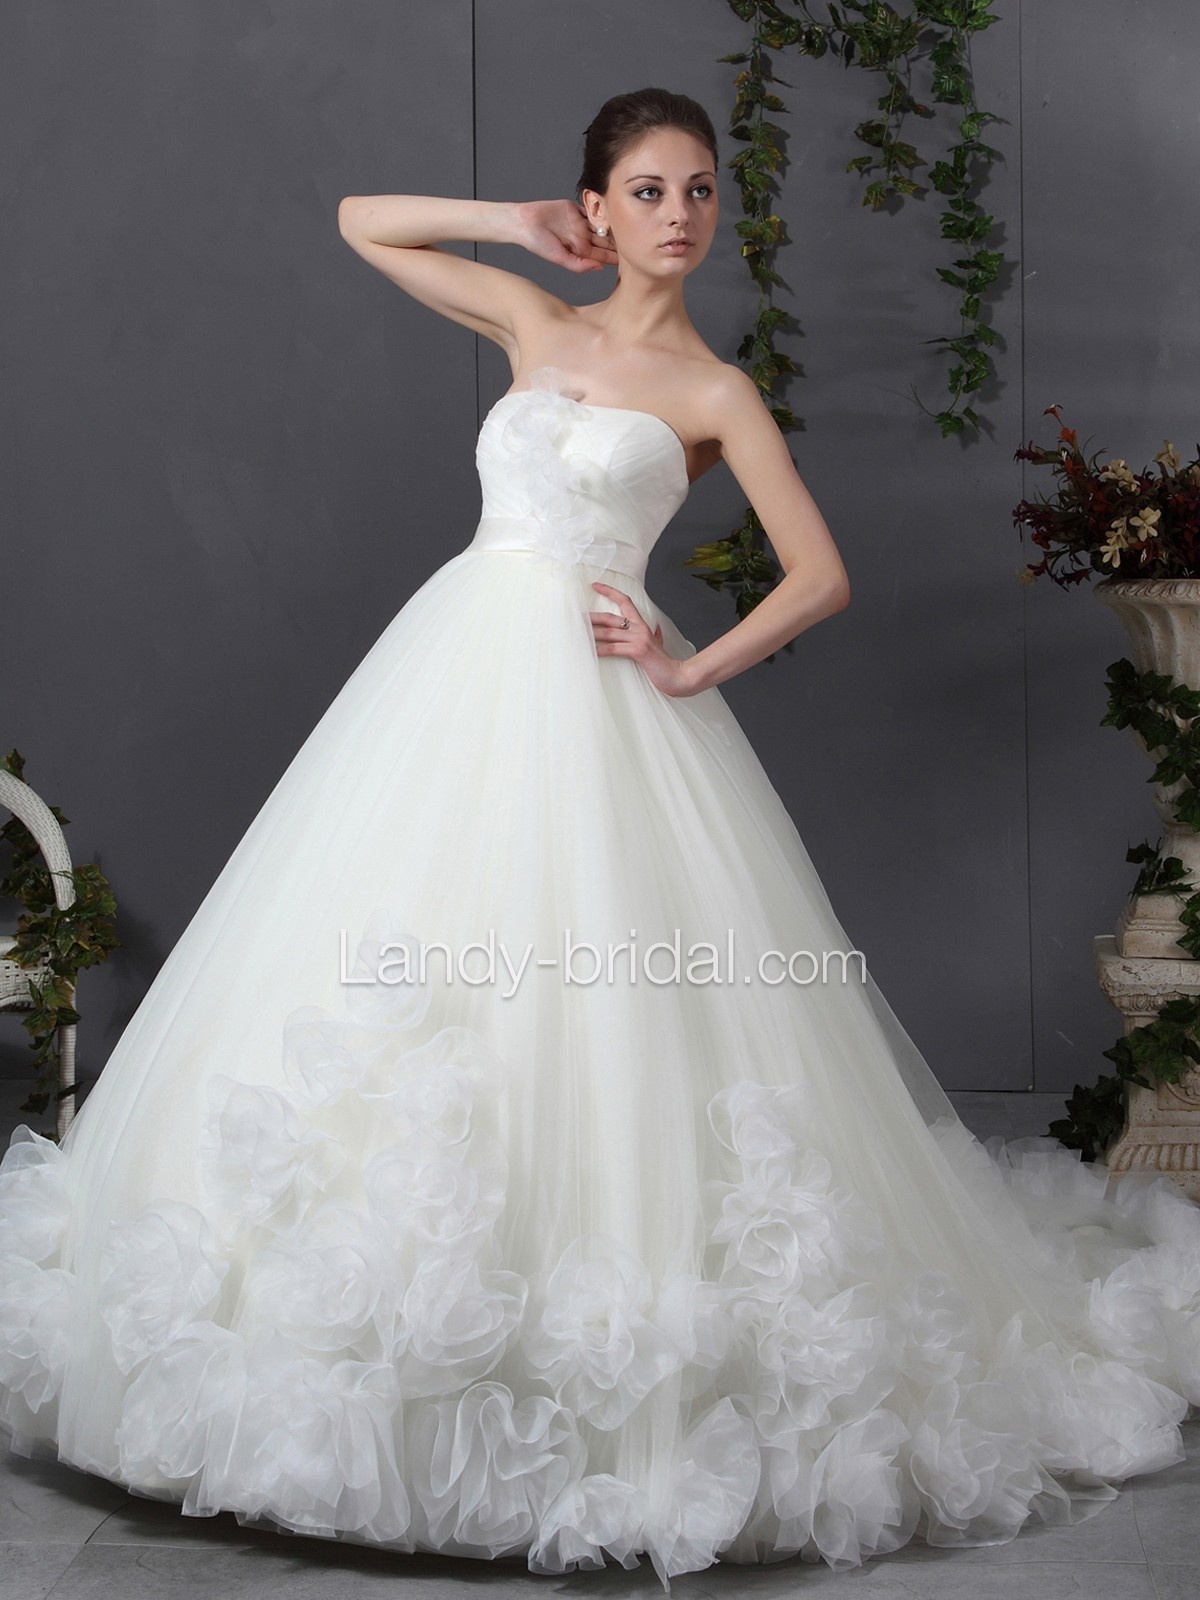 Outstanding Girls Wedding Dresses 1200 x 1600 · 263 kB · jpeg